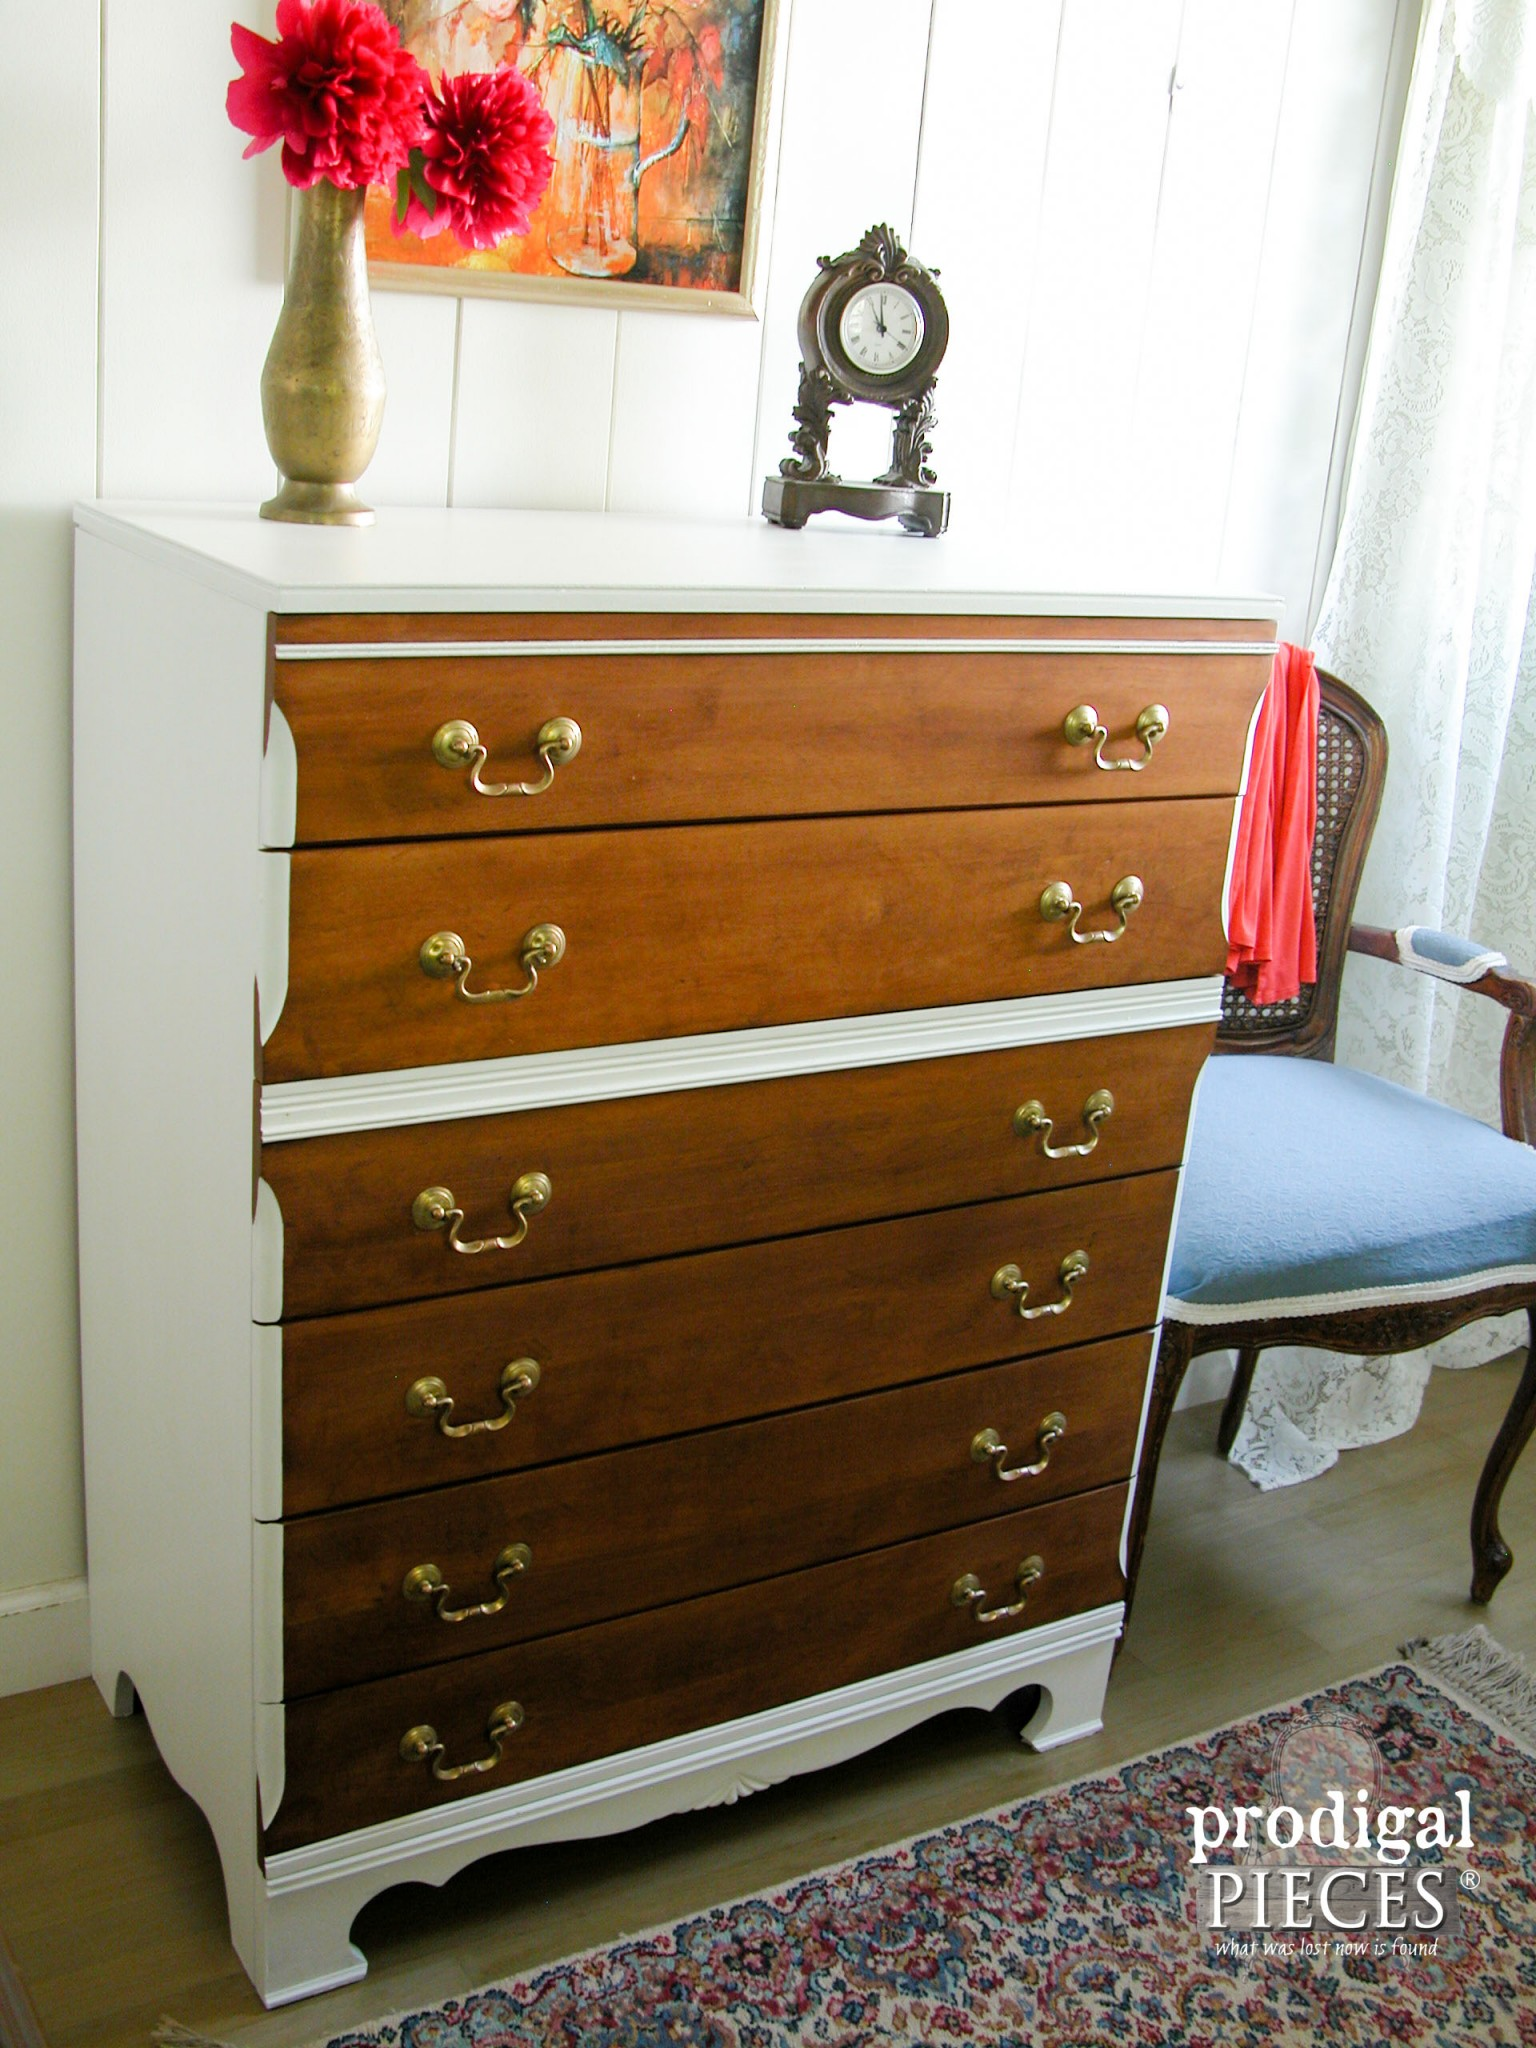 Sleek Mid Century Modern Chest with Boho Flair by Prodigal Pieces | www.prodigalpieces.com